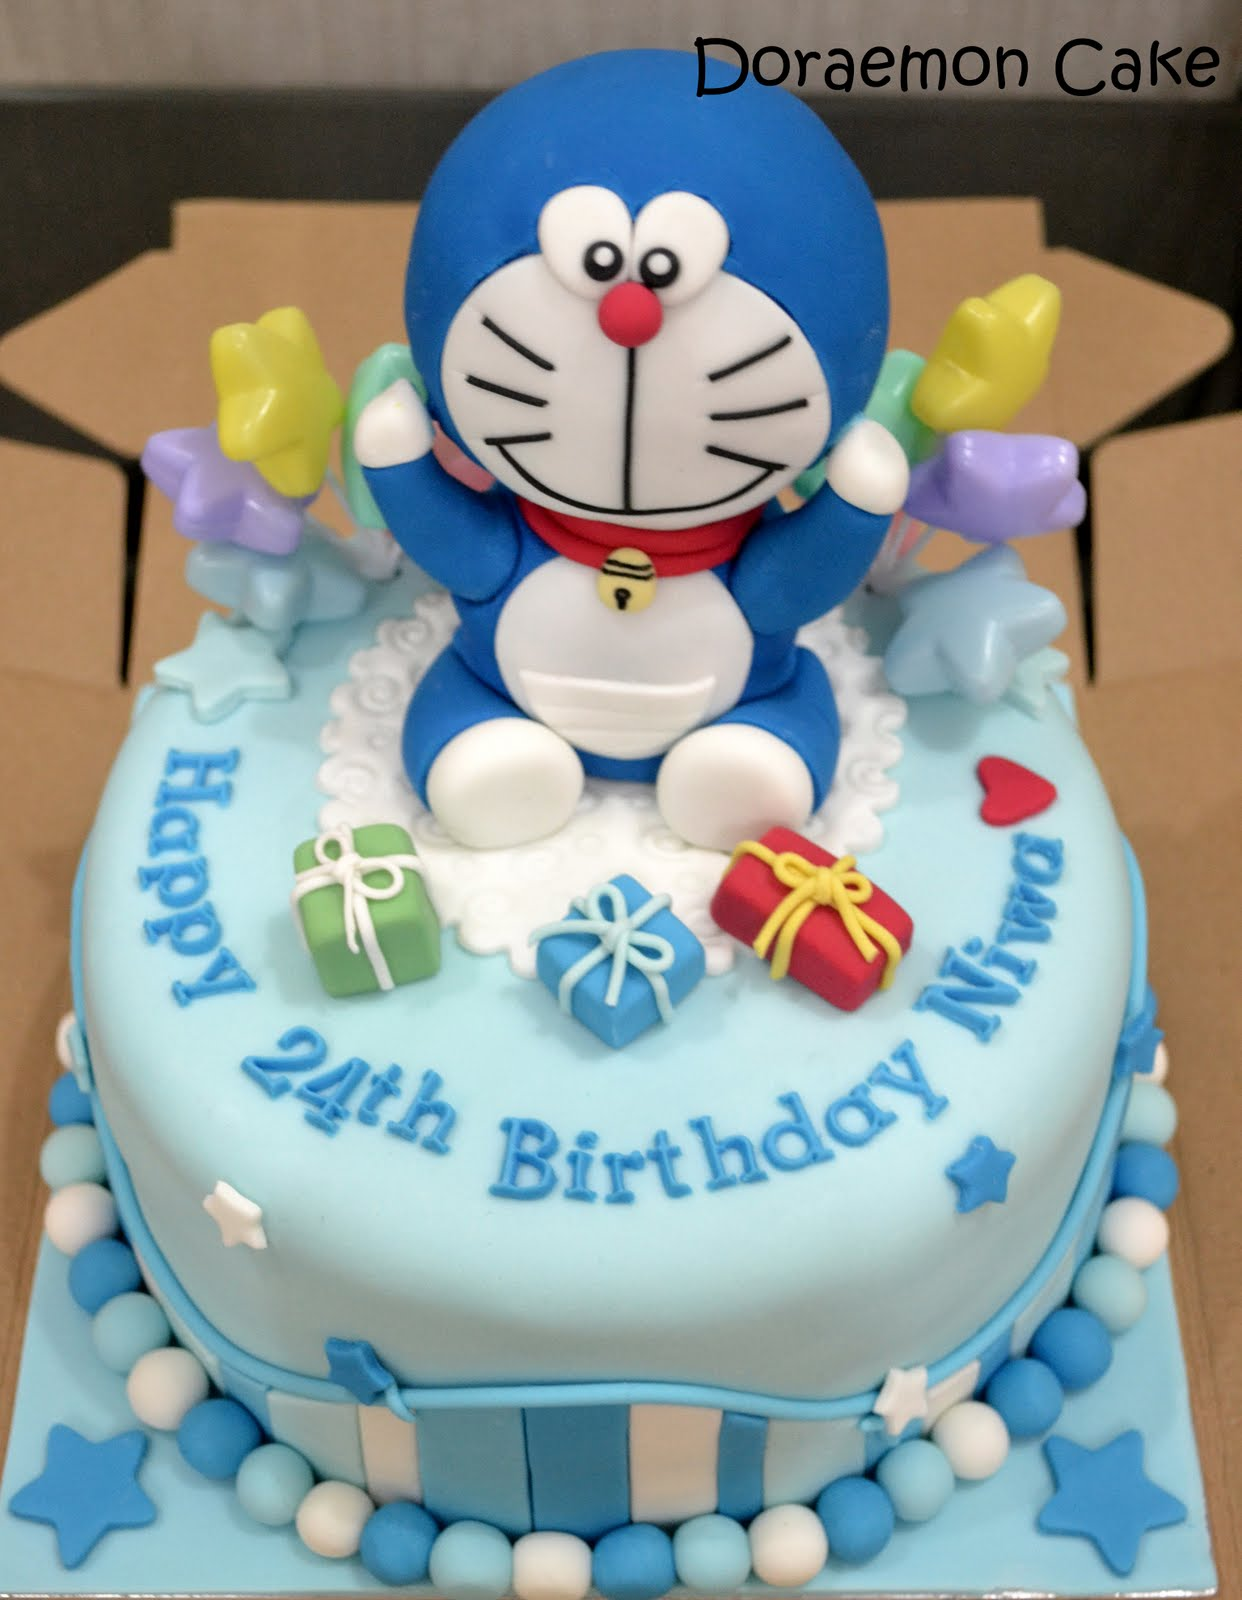 1000+ ideas about Doraemon Cake on Pinterest Cakes ...